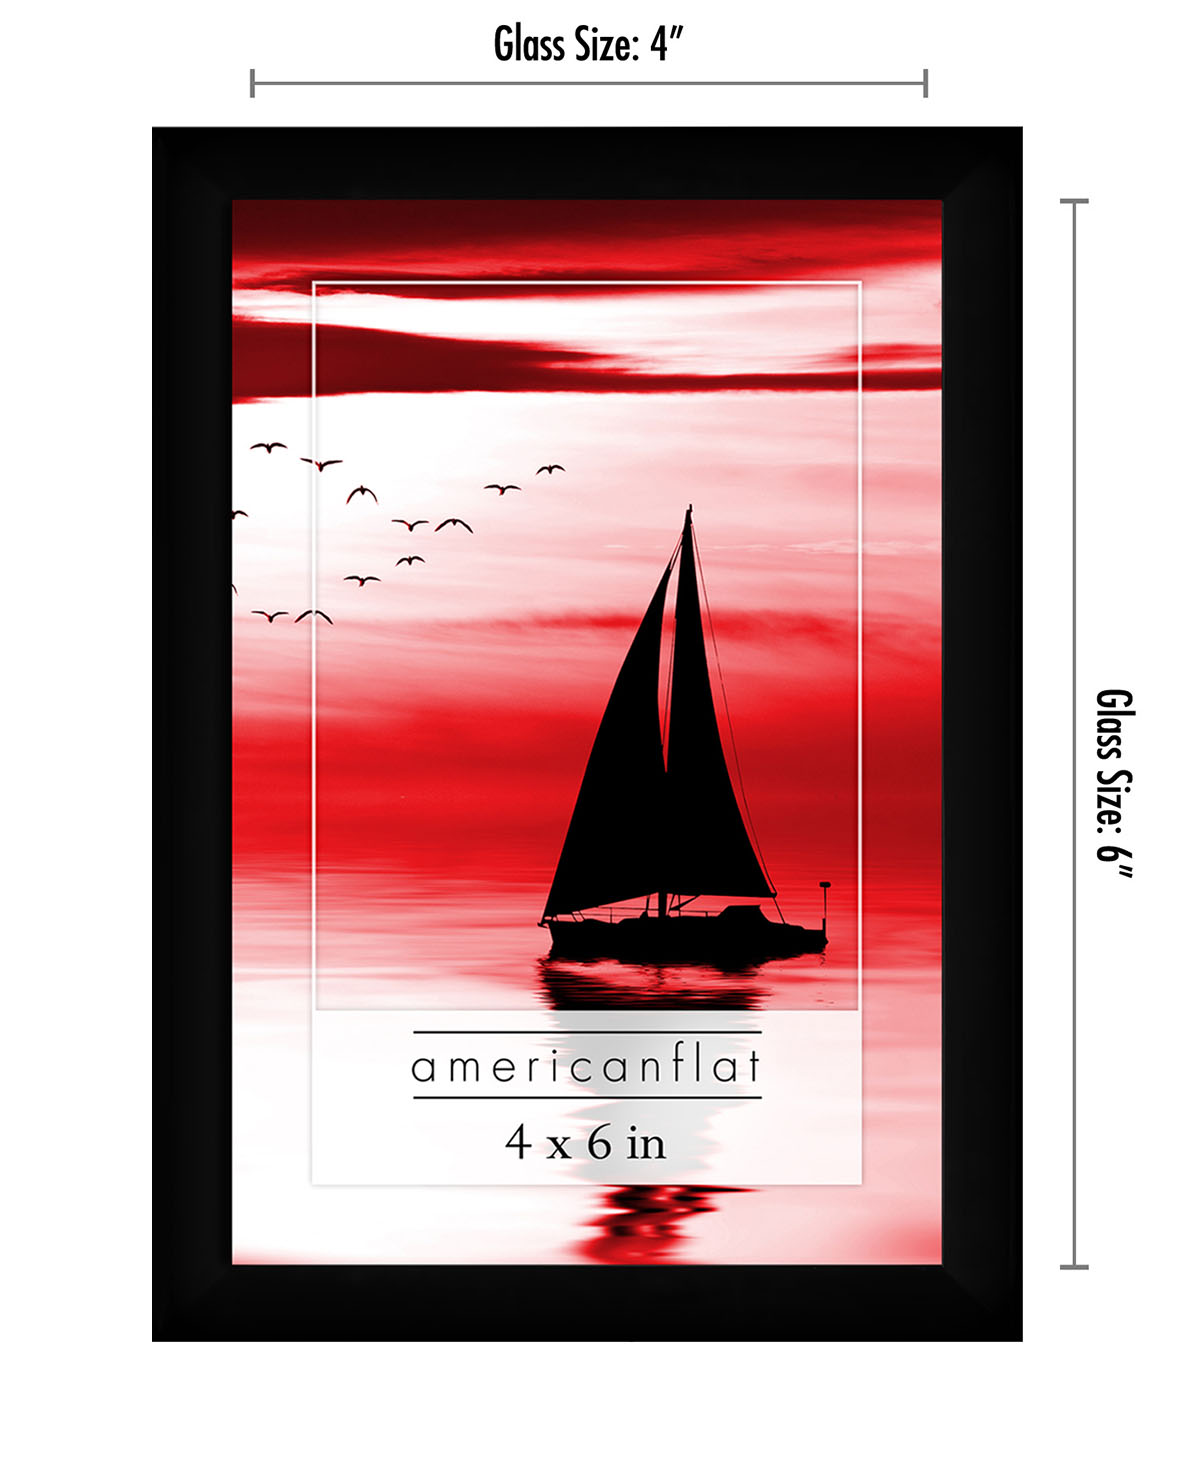 miniature 24 - Americanflat Picture Frame Black Plastic 4x6 5x7 8x10 Wall Tabletop 6 or 12 Pack